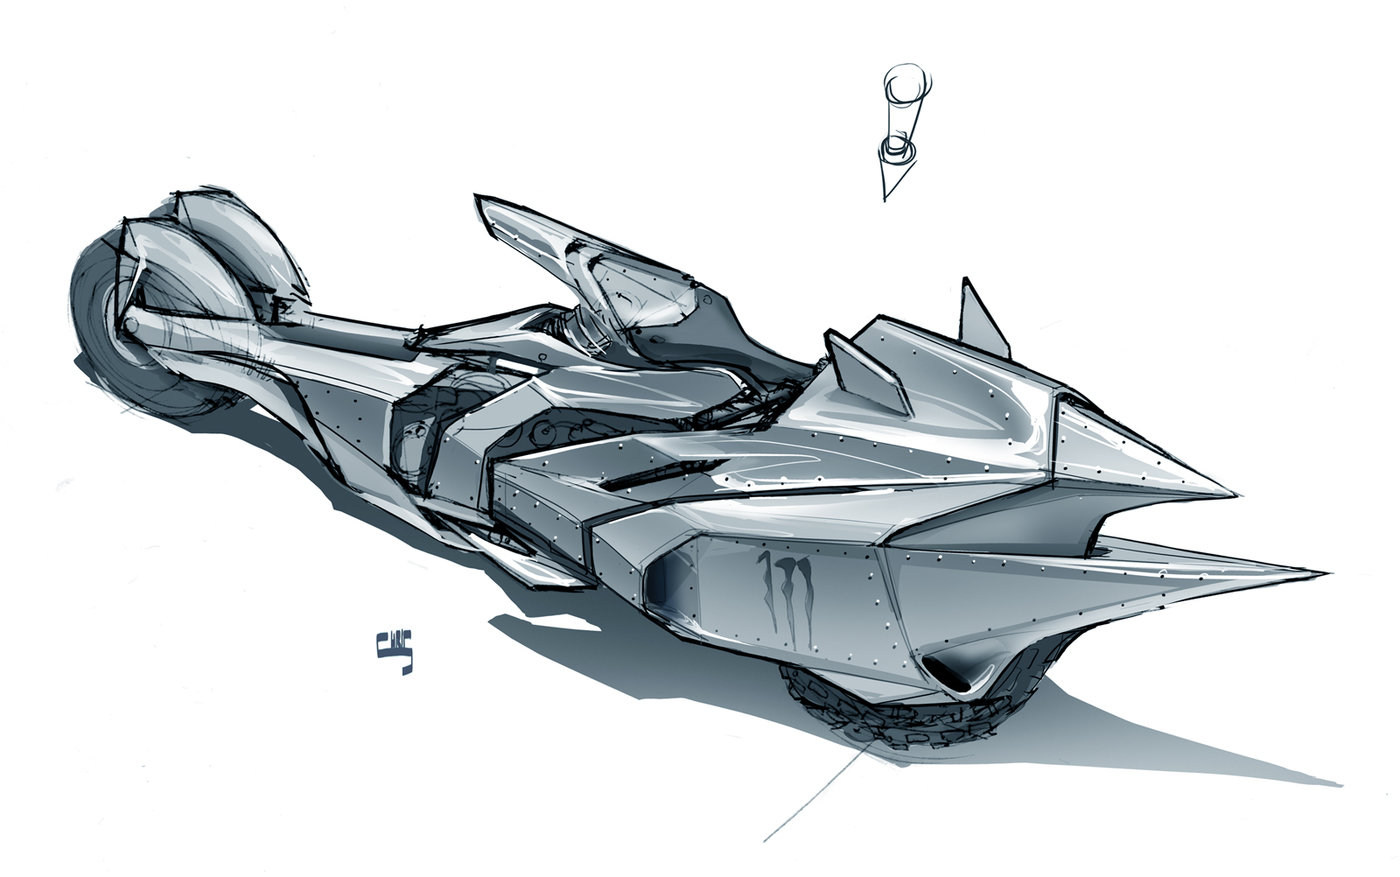 Concept by Christopher Armstrong at Coroflot.com